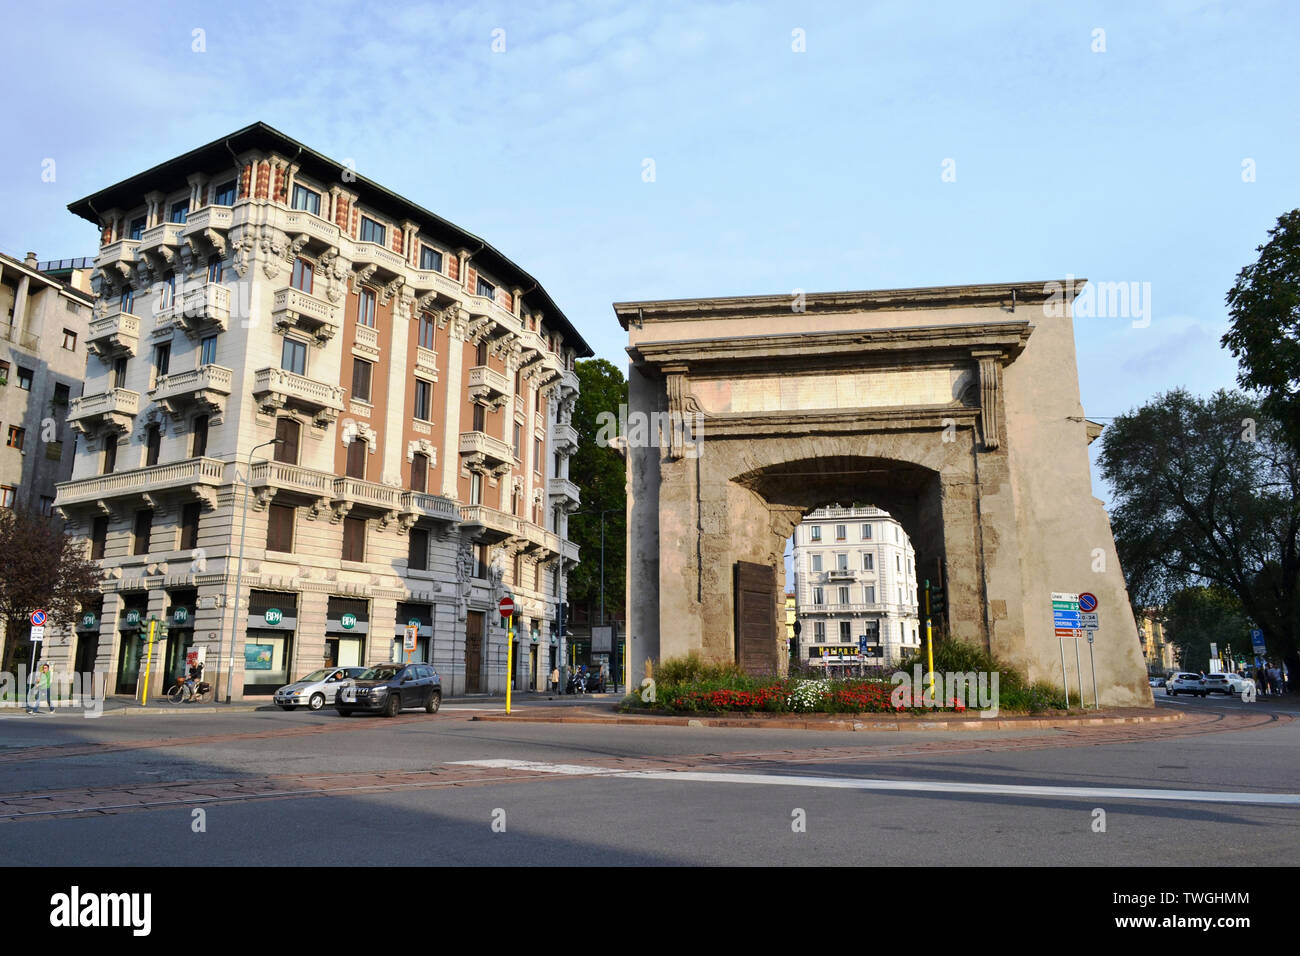 Milan/Italy - October 10, 2015: Internal view from the part of the city to the Porta Romana ancient gate of Milan with 2 enormous old wooden doors. Stock Photo